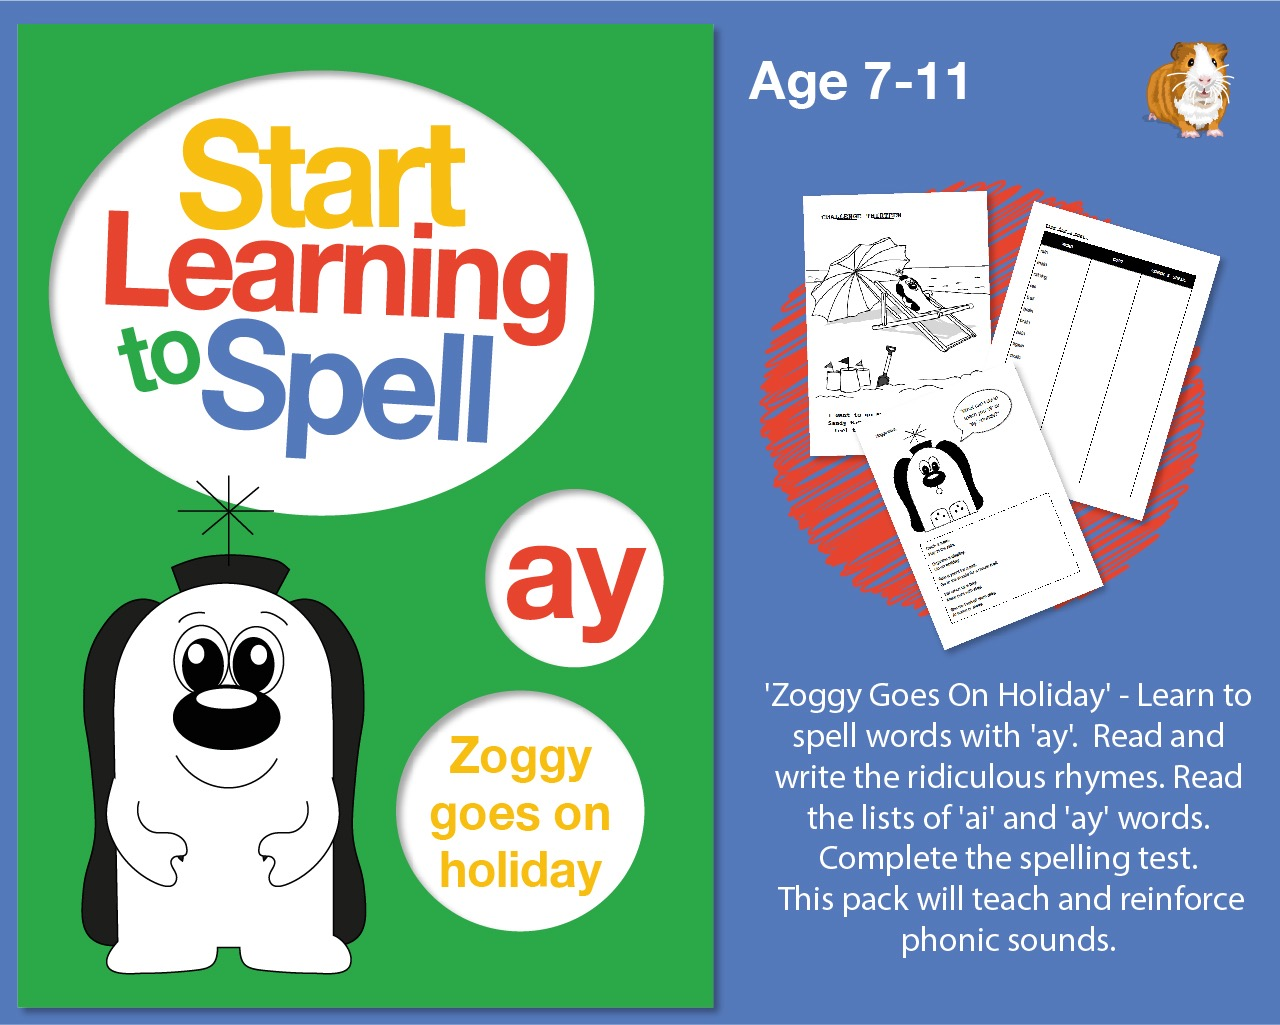 'Zoggy Goes On Holiday' Learn To Spell Words With 'ay' (7-11 years)